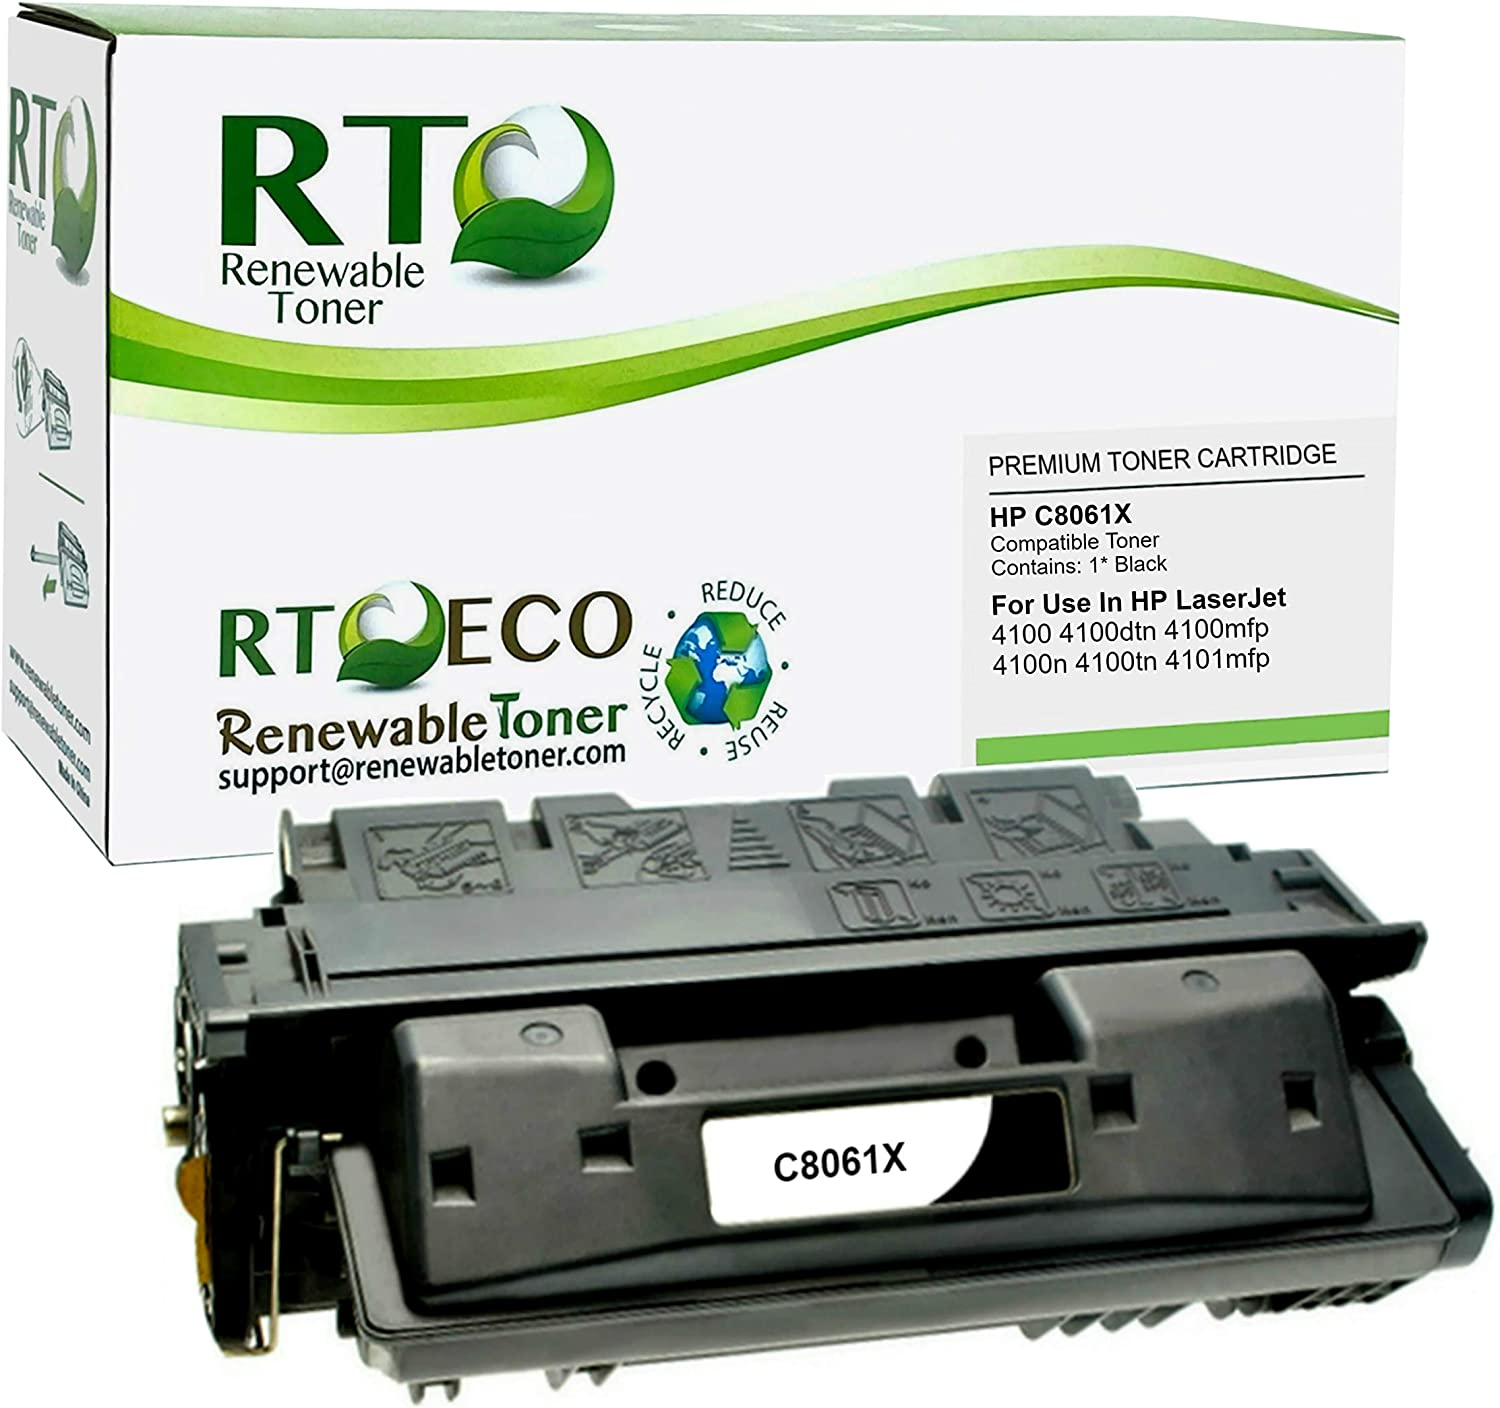 Renewable Toner Compatible High Yield Toner Cartridge Replacement for HP 61X C8061X LaserJet 4100